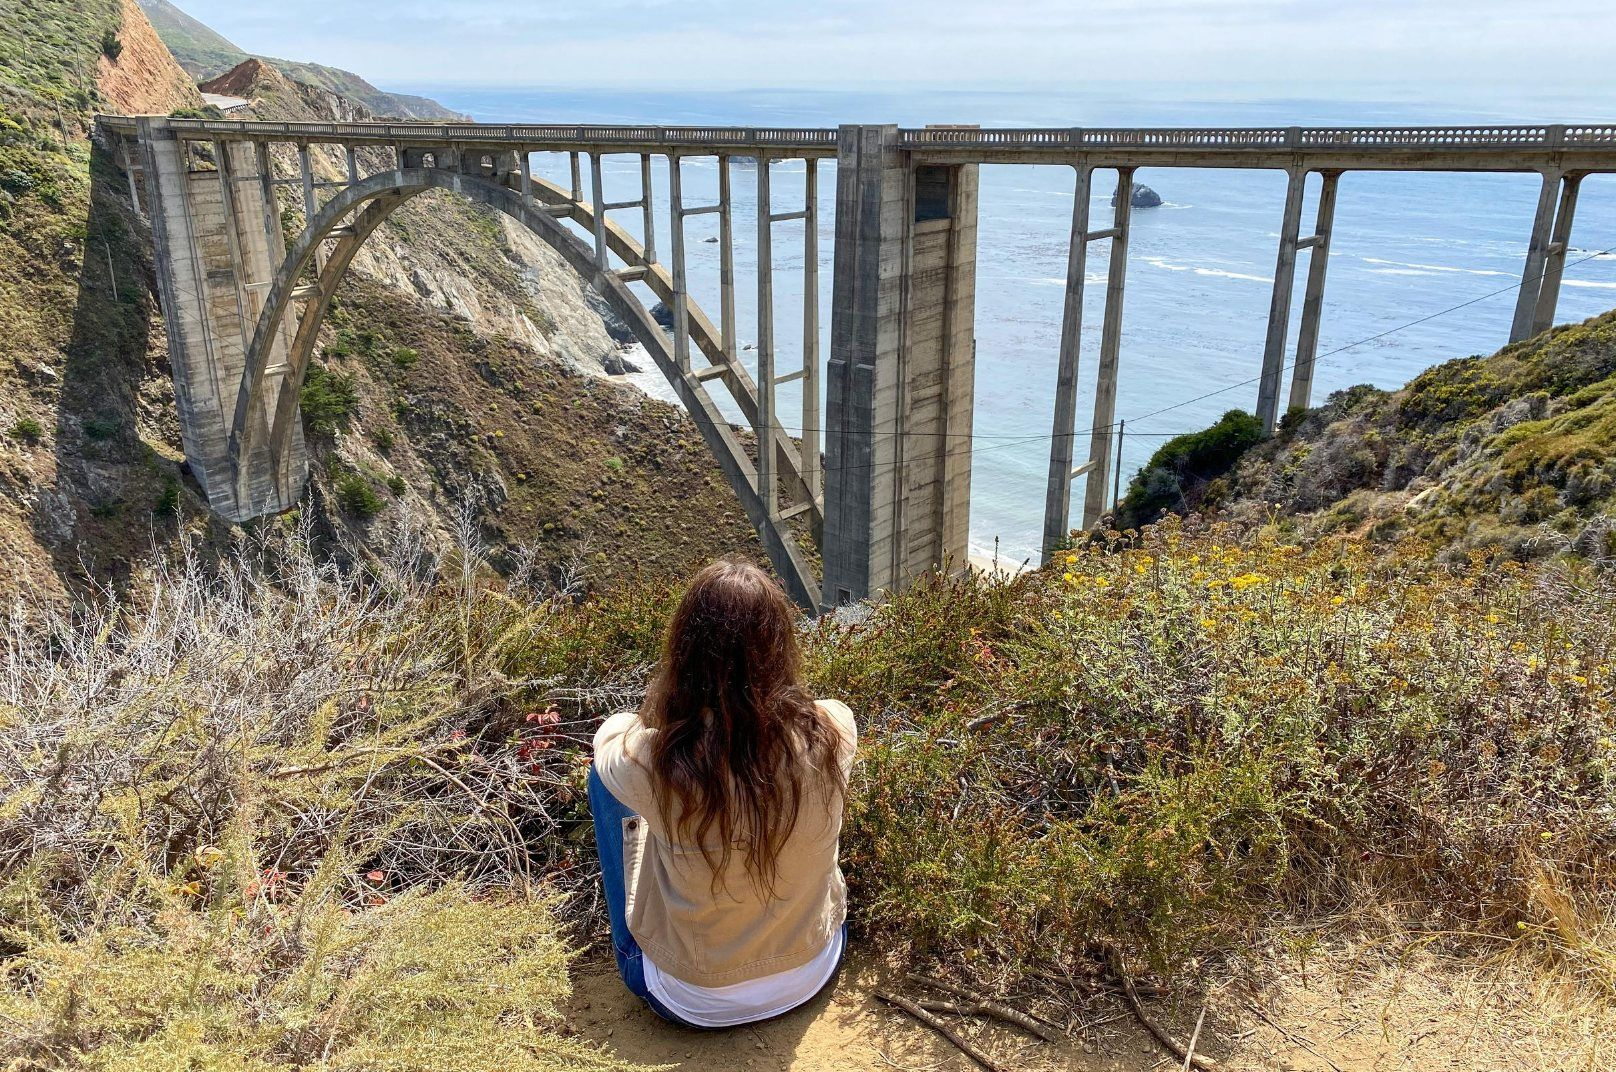 Best Things To Do In Monterey, Carmel, and Big Sur